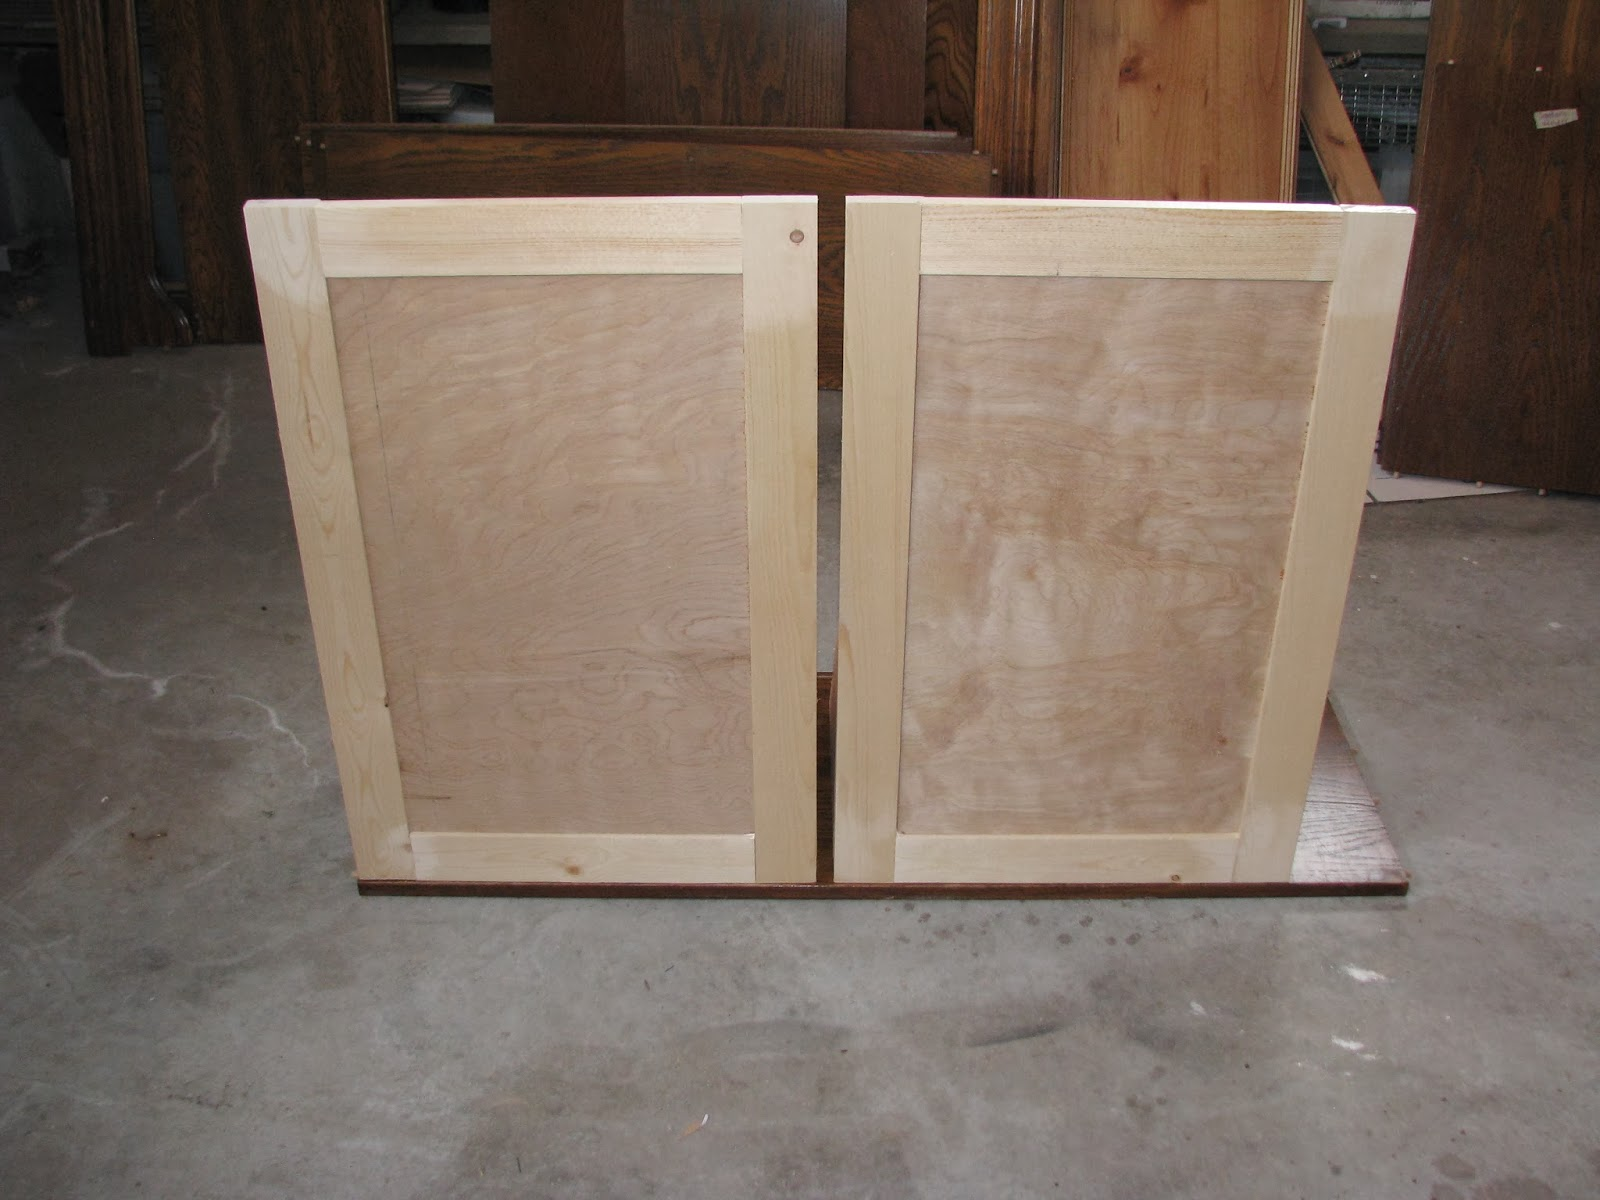 Making Kitchen Cabinets With Kreg Jig